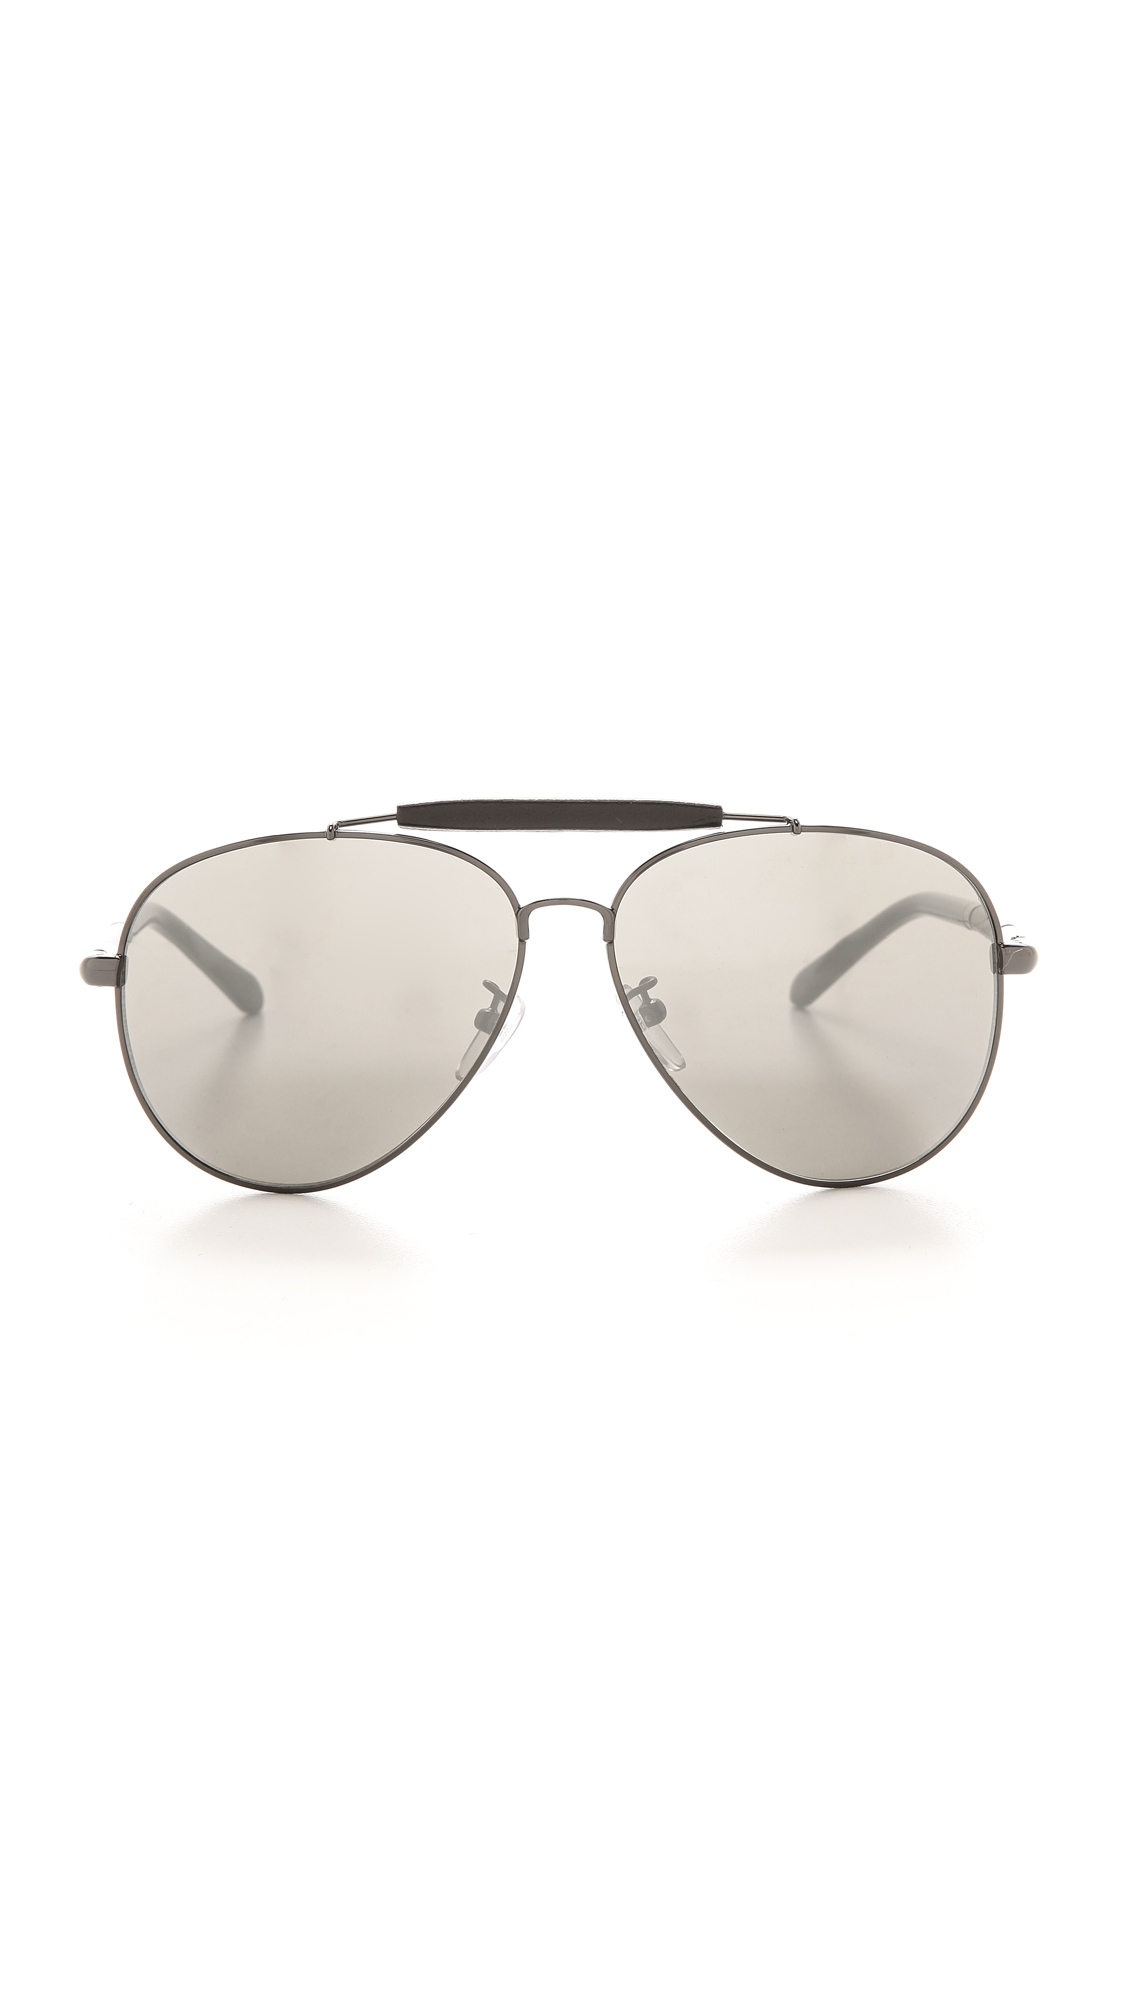 Lyst   Givenchy Top Bar Aviator Sunglasses   Gunmetal/Smoke Mirror In  Metallic